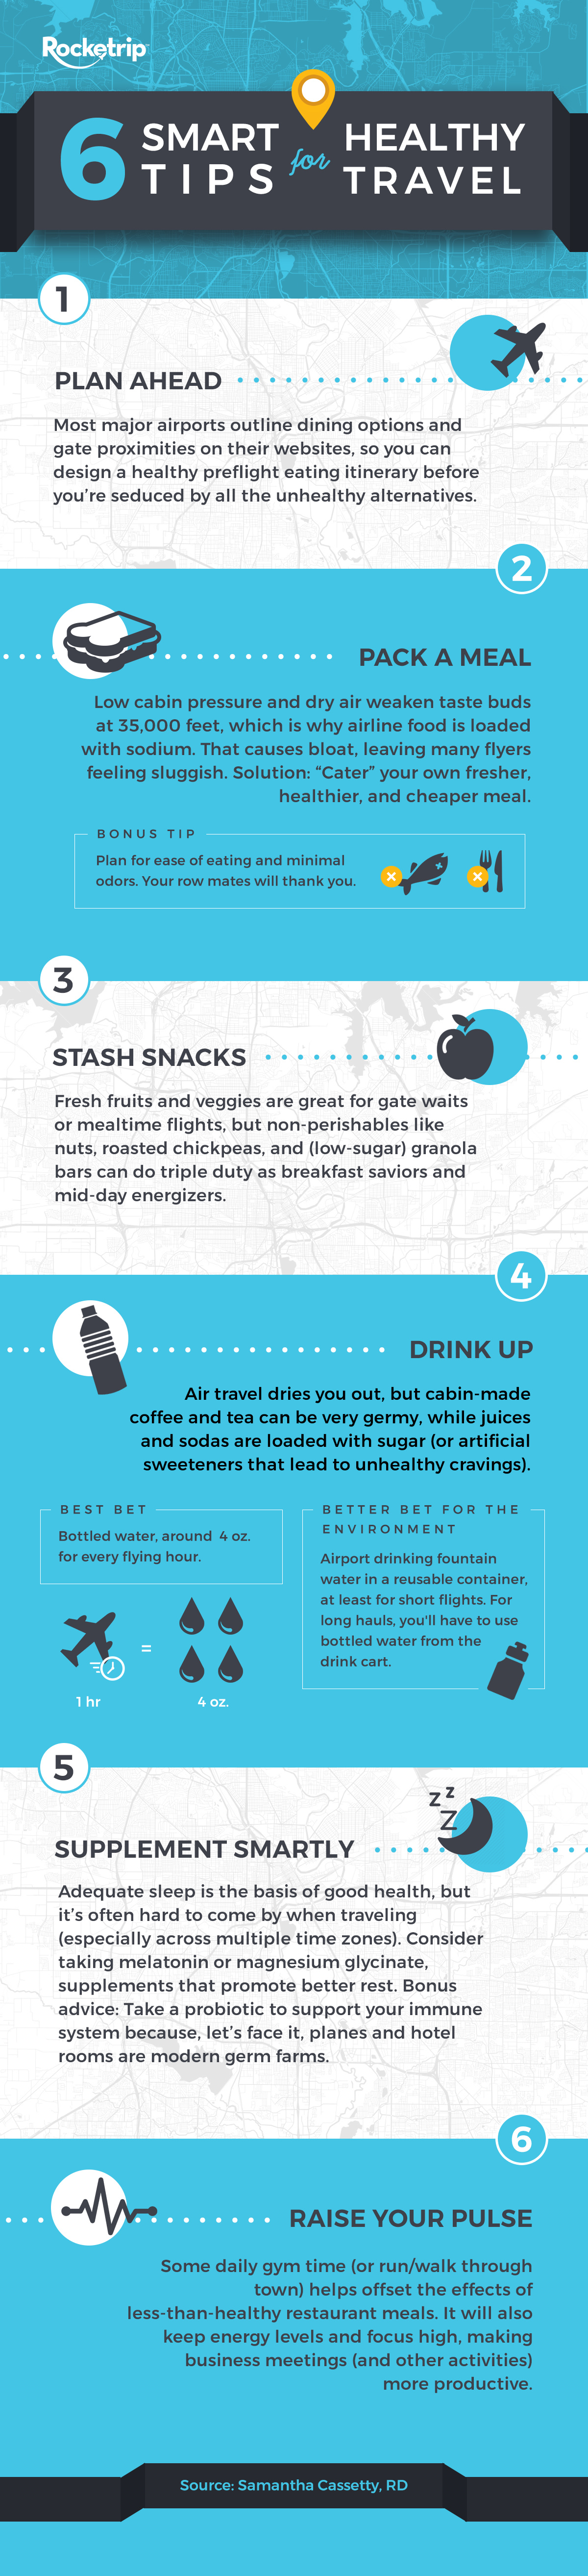 Smart Healthy Travel Tips